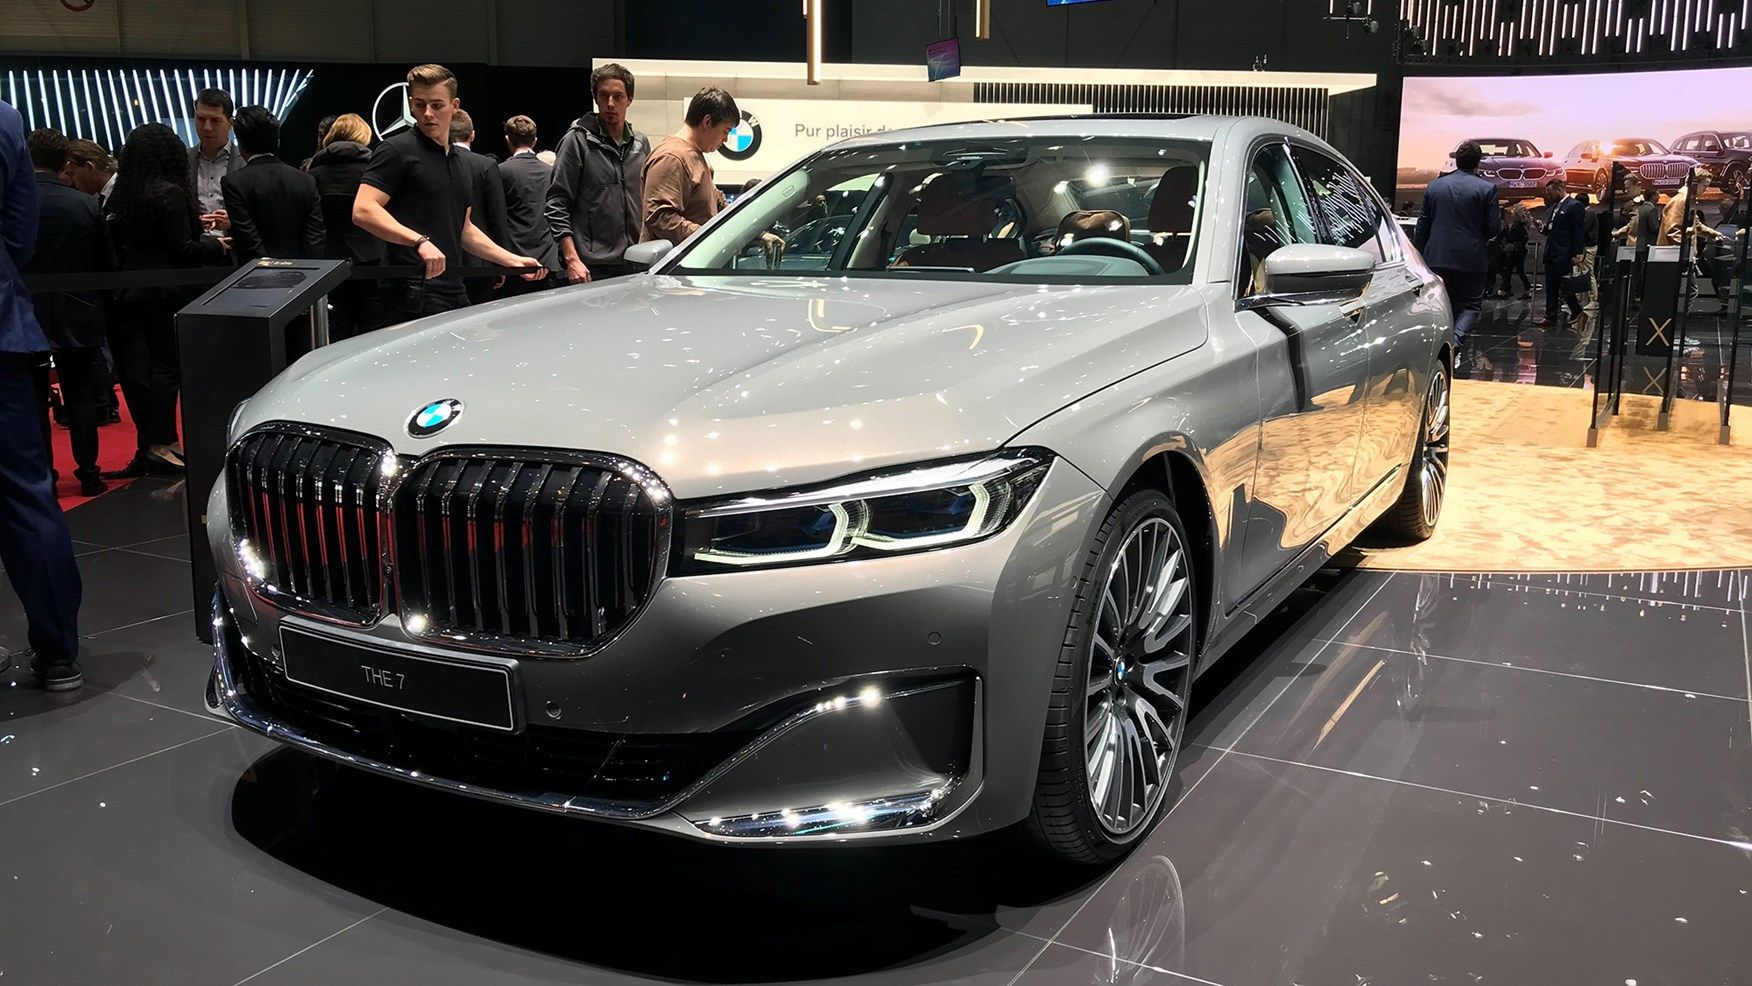 New 2019 Bmw 7 Series Uk Prices And Specs Revealed This Moment